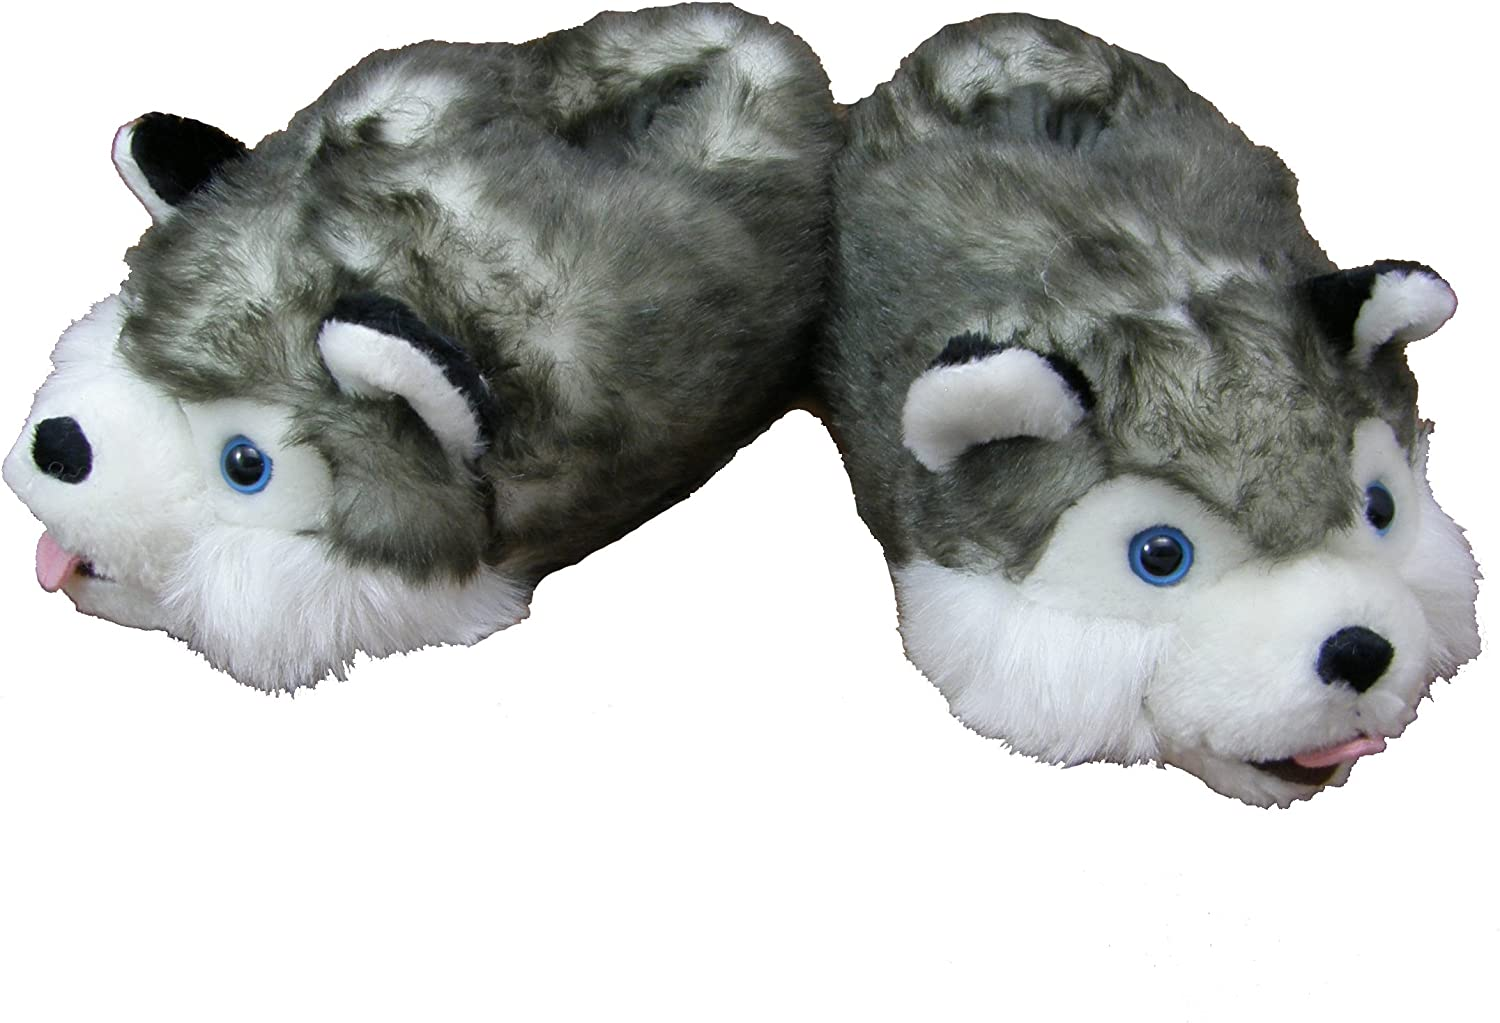 Orlob Husky Plush Slippers Sizes S To Xl Eu Size 28 31 To Eu Size 42 44 Xl Grey Amazon Co Uk Shoes Bags